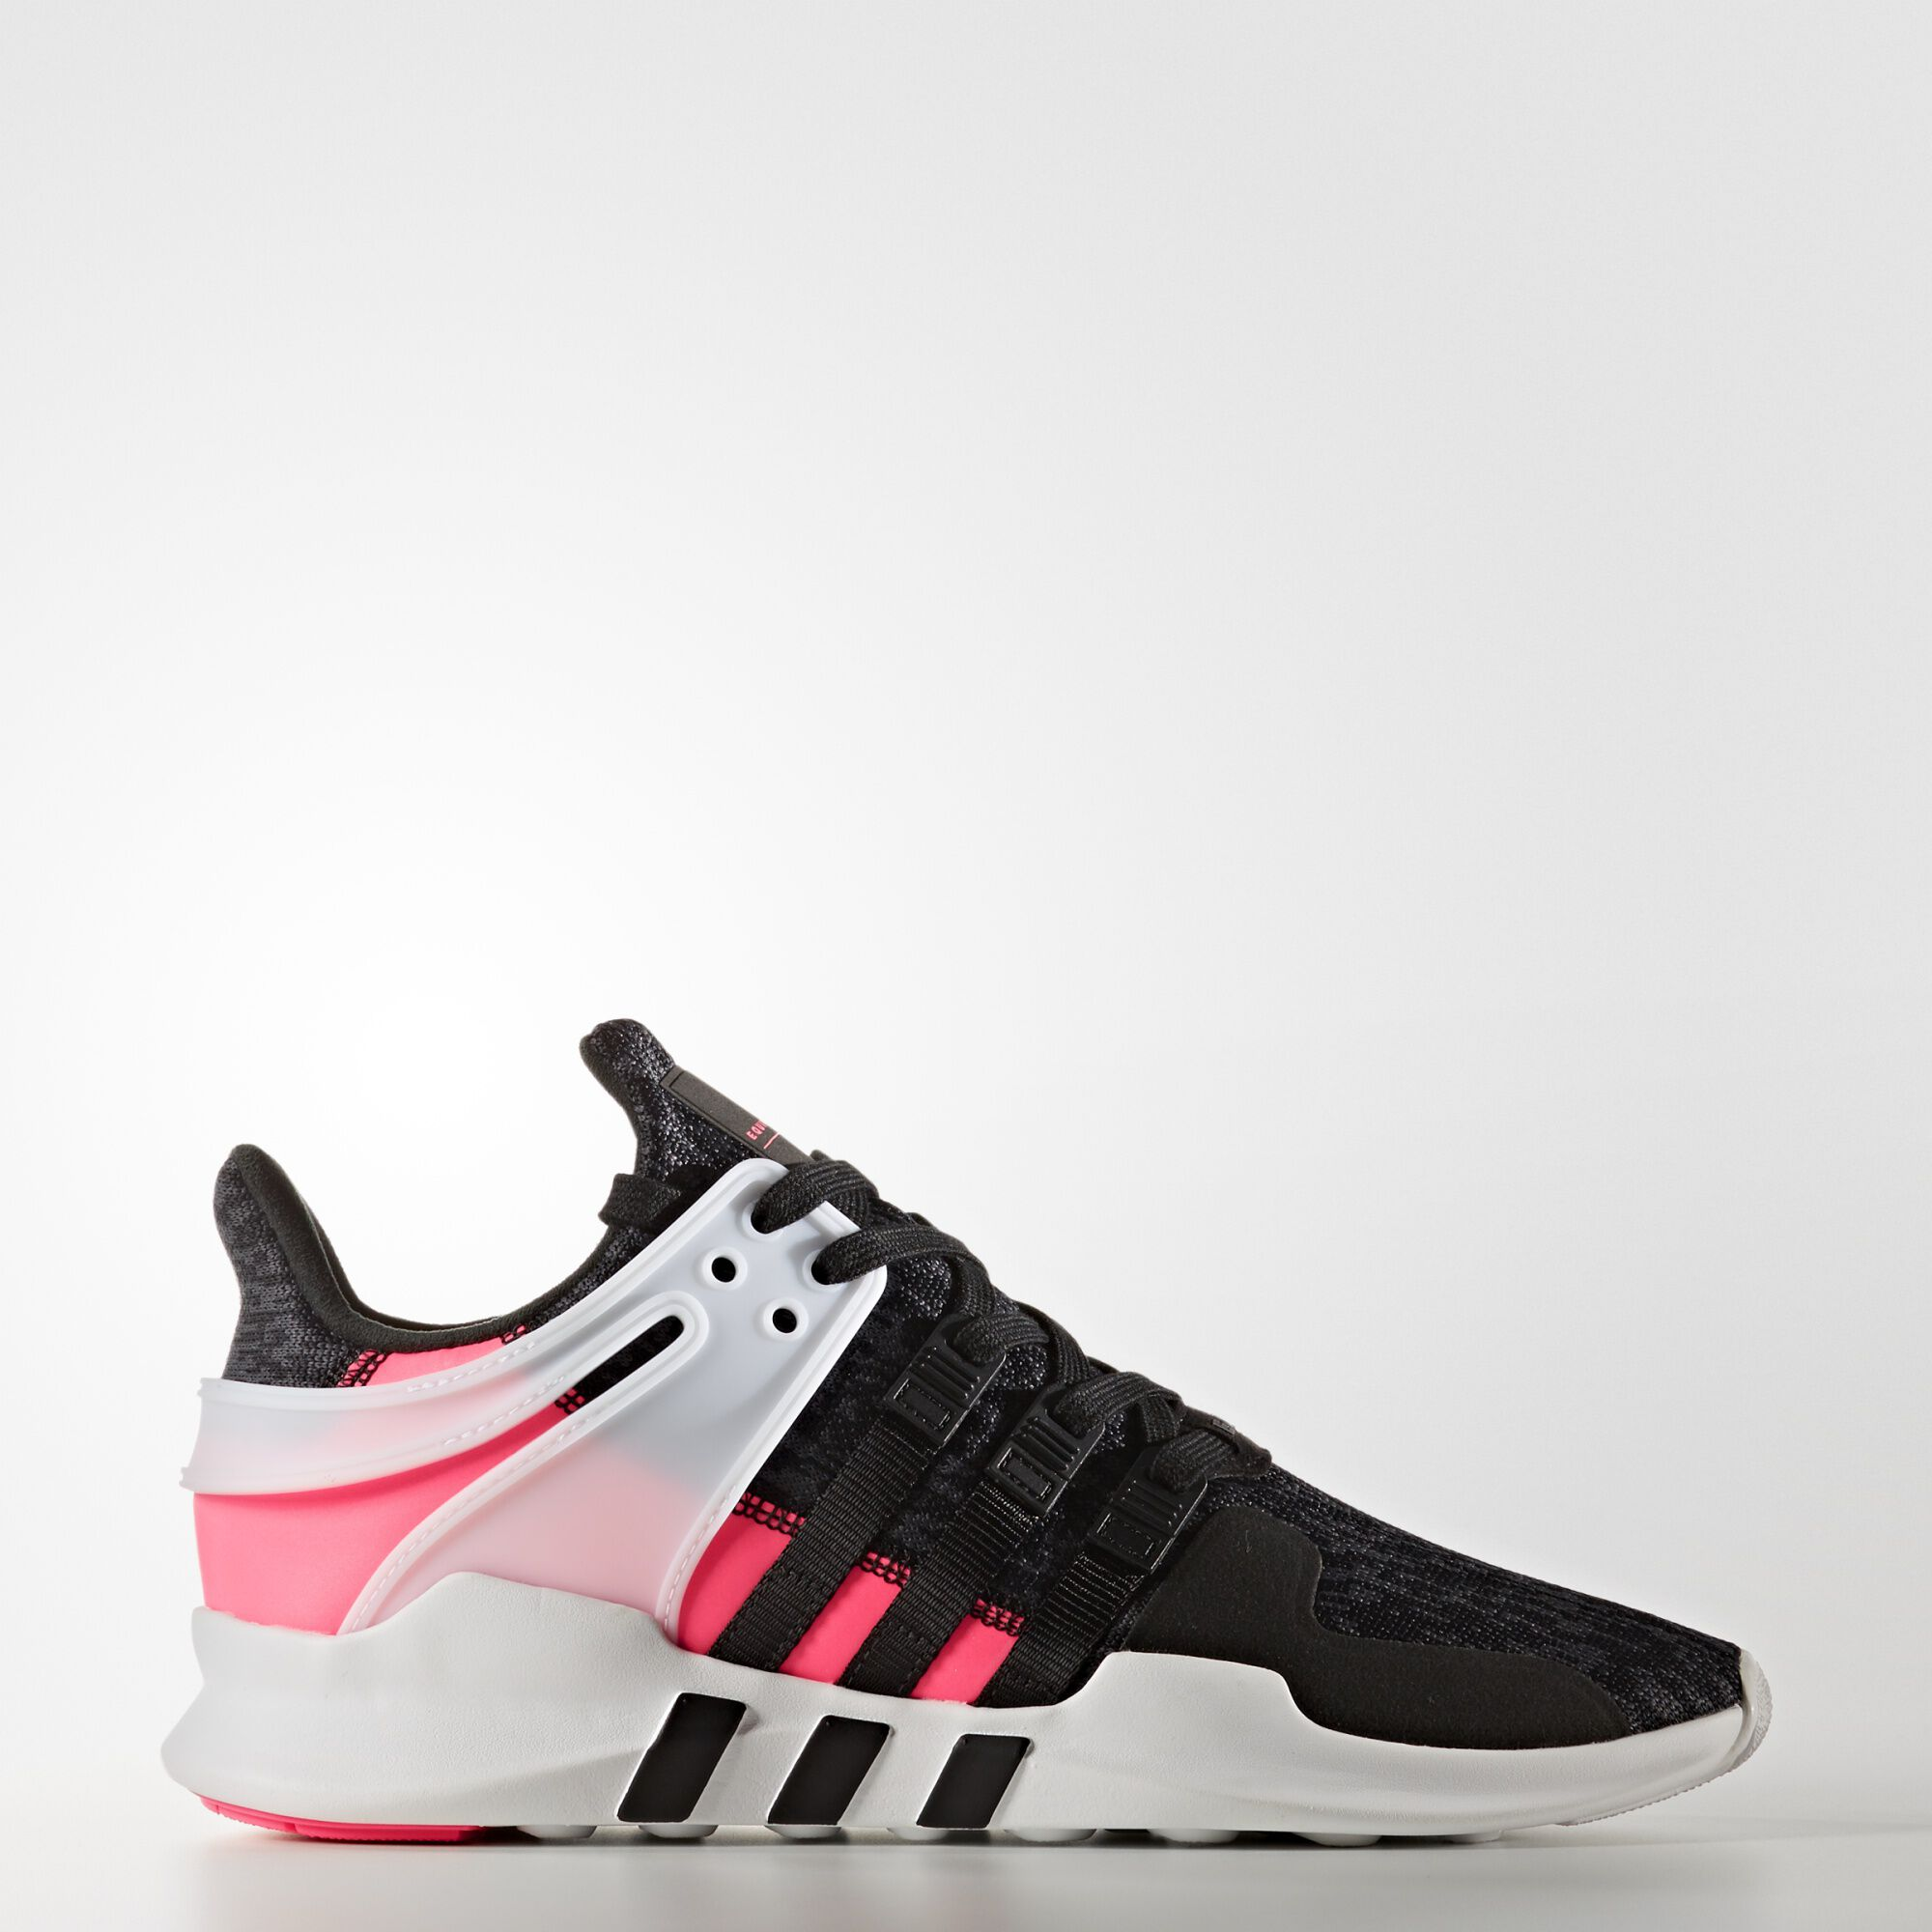 Adidas EQT ADV Support PK Sneaker review!!